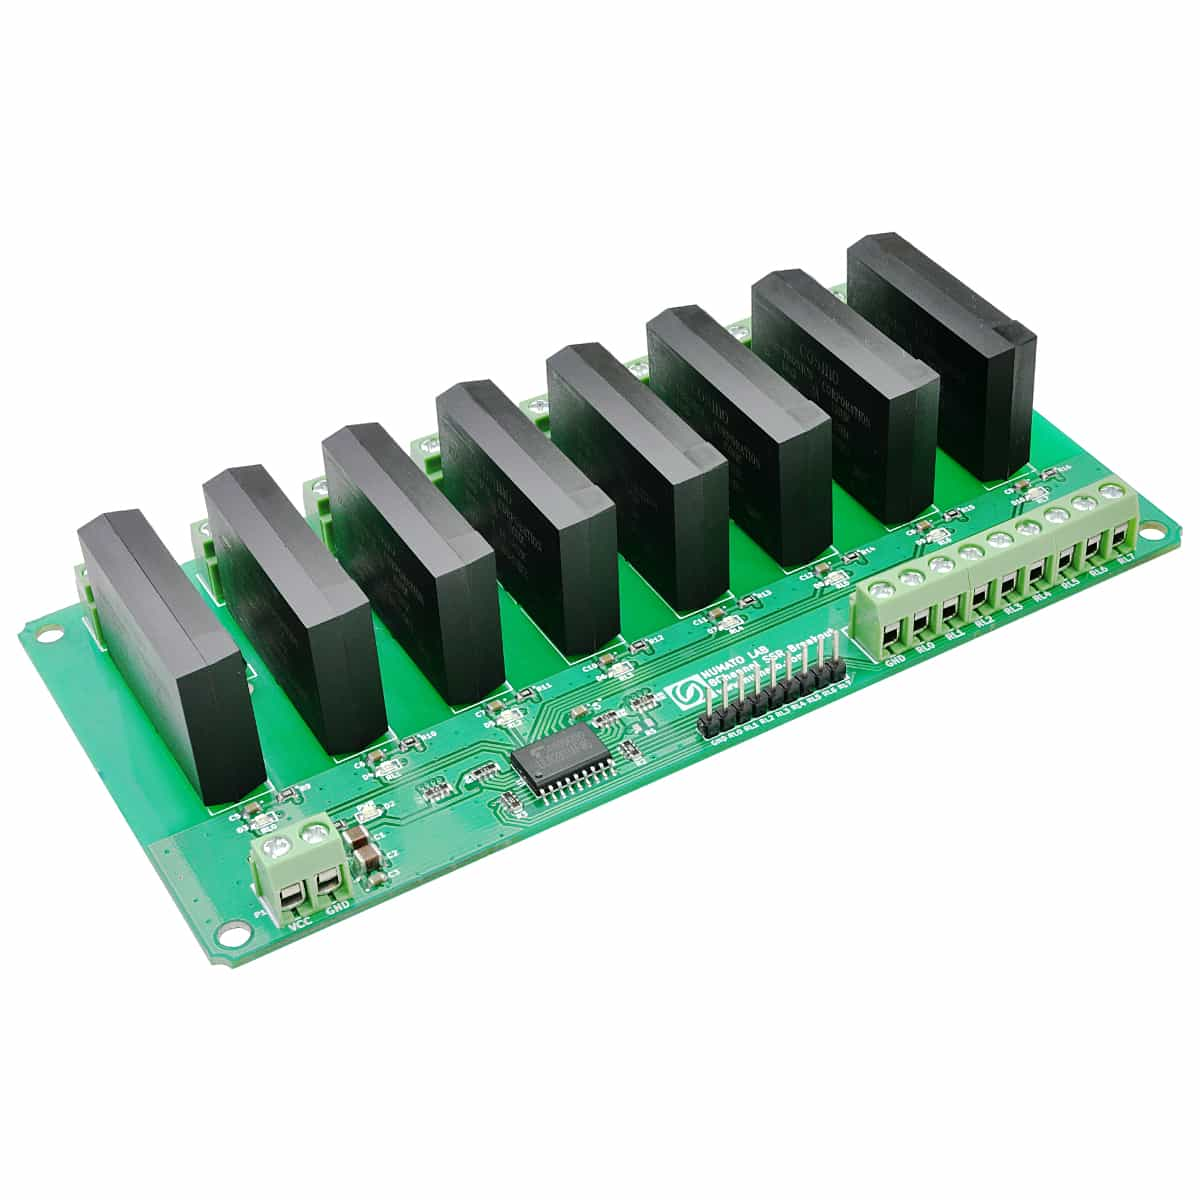 2 Channel Programmable Relay Module With Gpio Numato Lab Solid State Variable 8 Controller Board